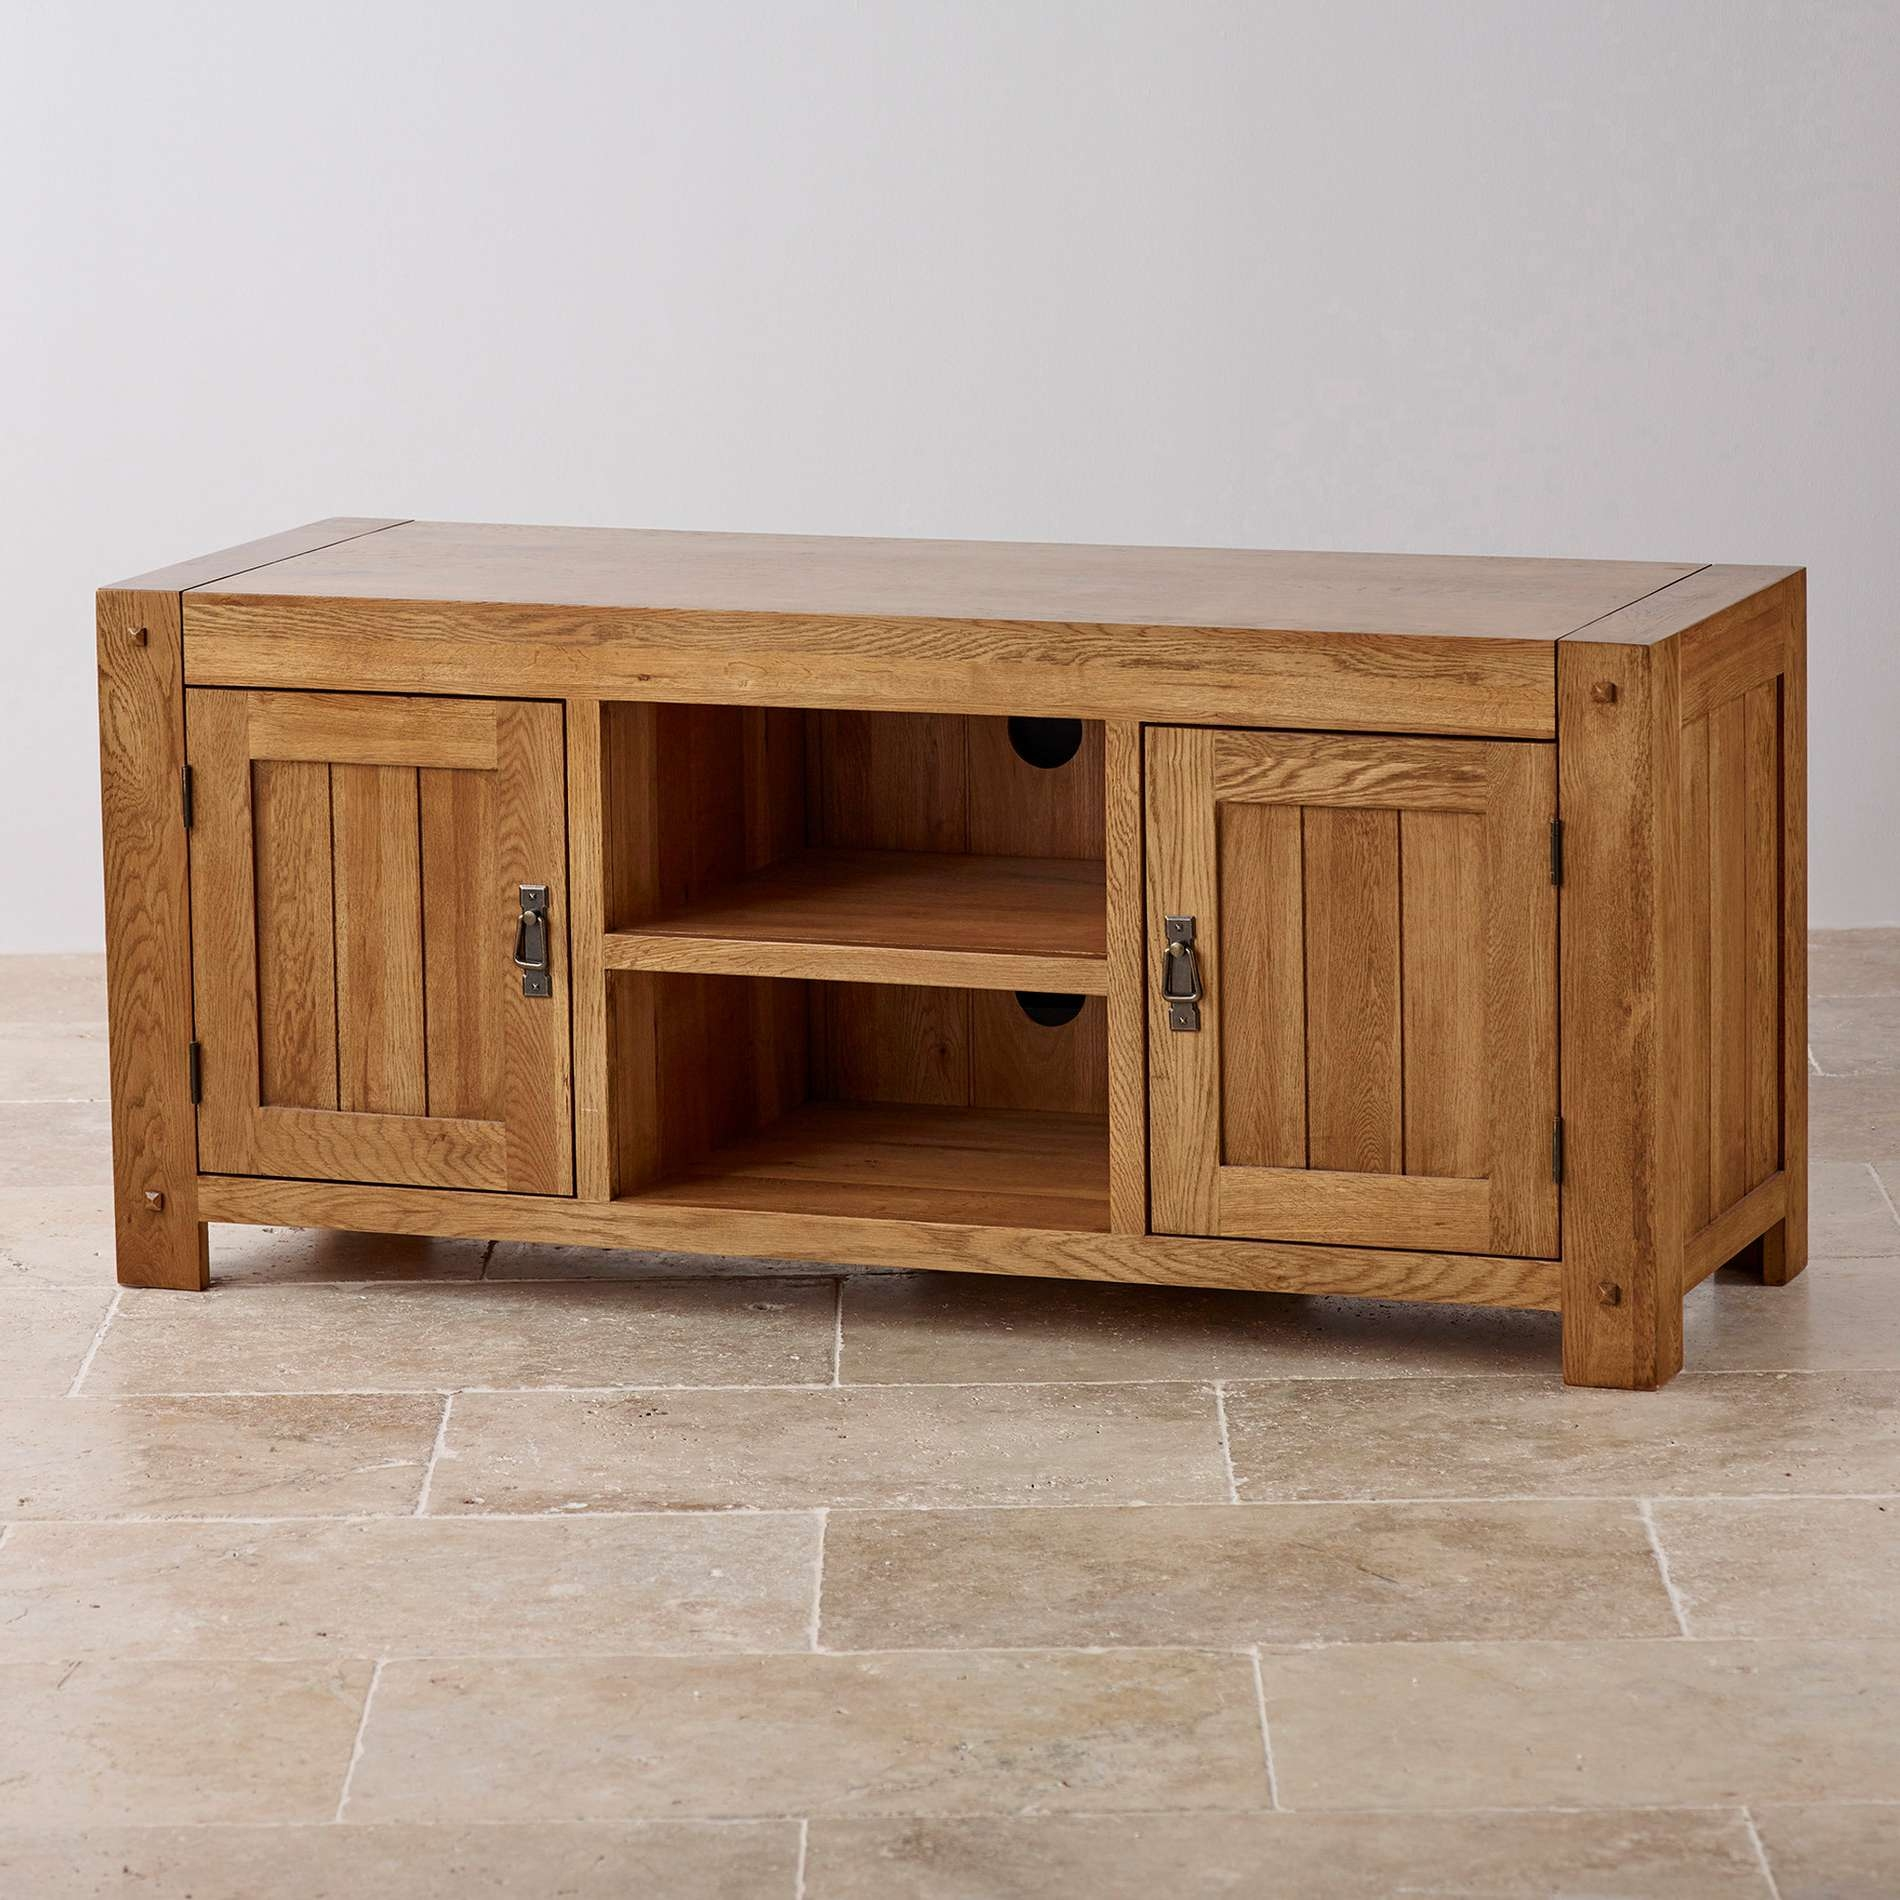 Tv Cabinets | Mango, Painted & Oak Tv Units | Oak Furniture Land With Regard To Mango Wood Tv Cabinets (View 17 of 20)